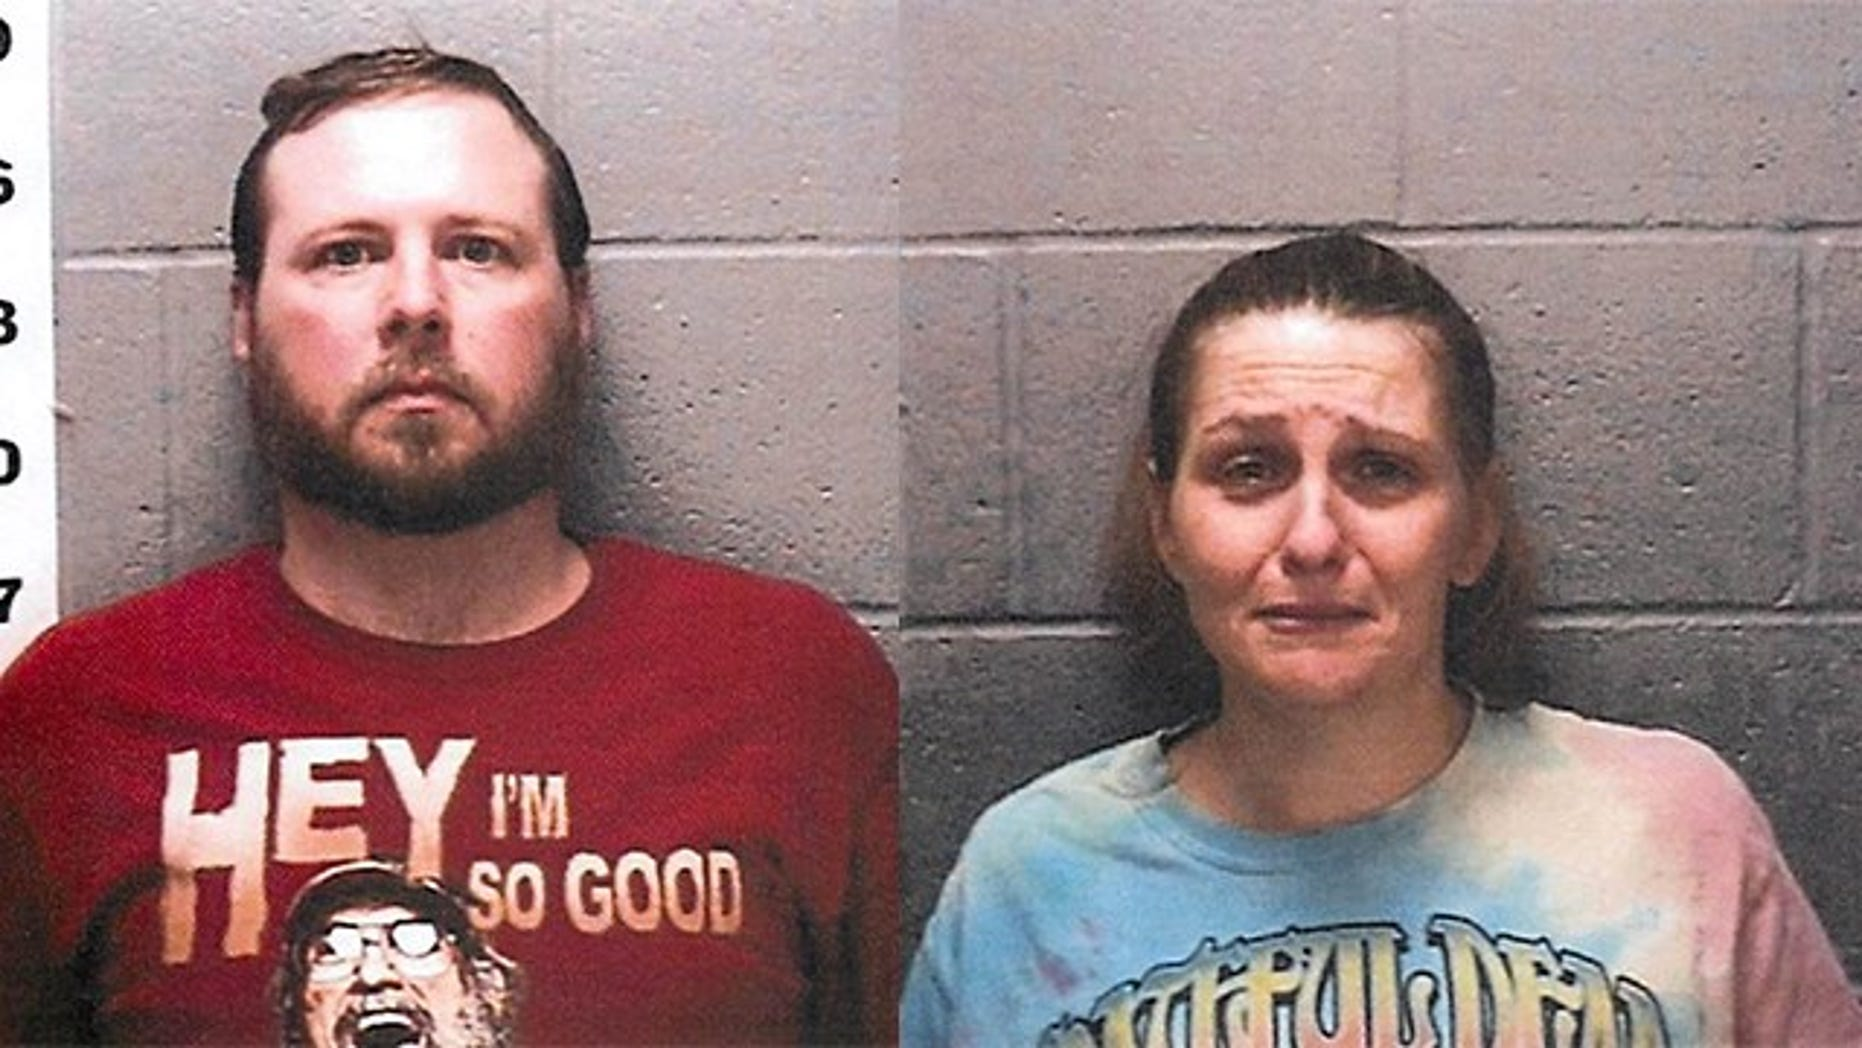 Michael Roberts, 42, and Georgena Roberts, 42, were charged with murder in the death of a 6-year-old boy.